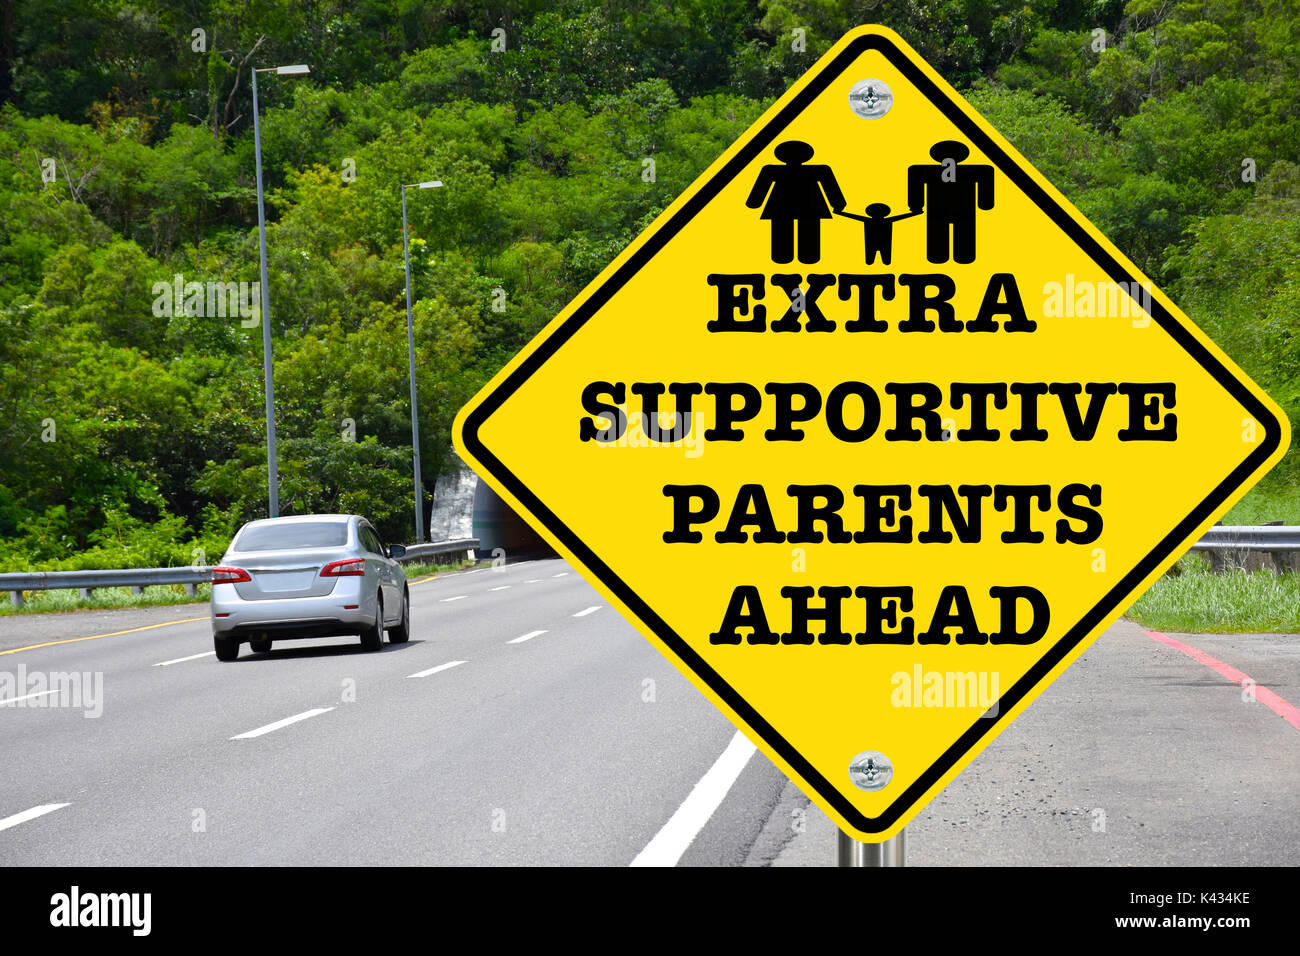 Extra supportive parents ahead, yellow warning road sign - Stock Image